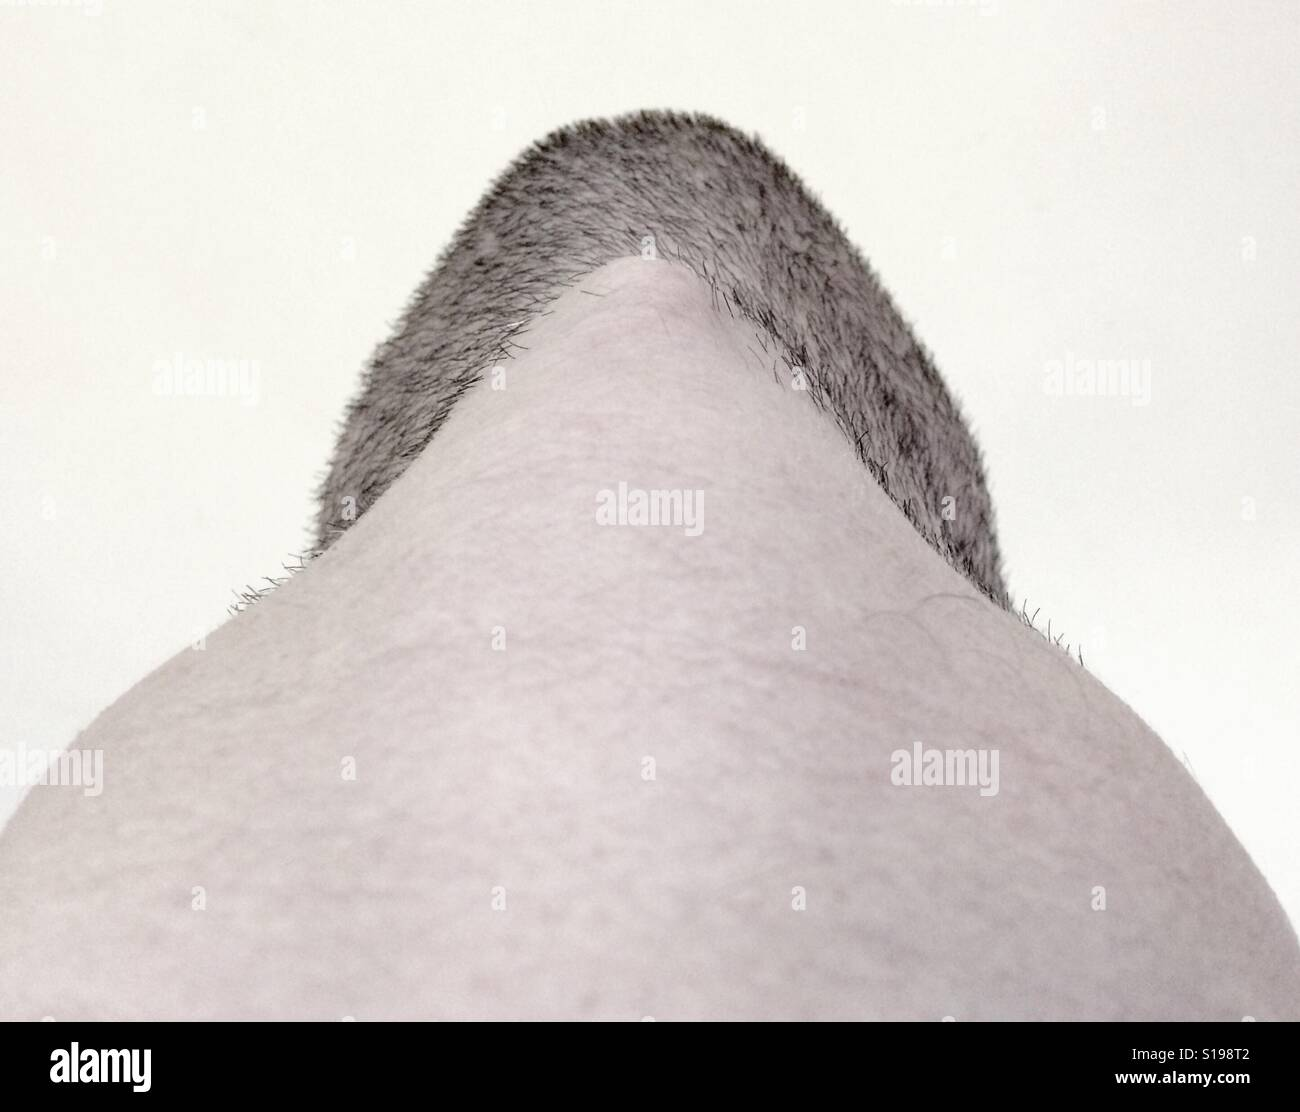 Unusual angle looking up at a stubbled chin. - Stock Image